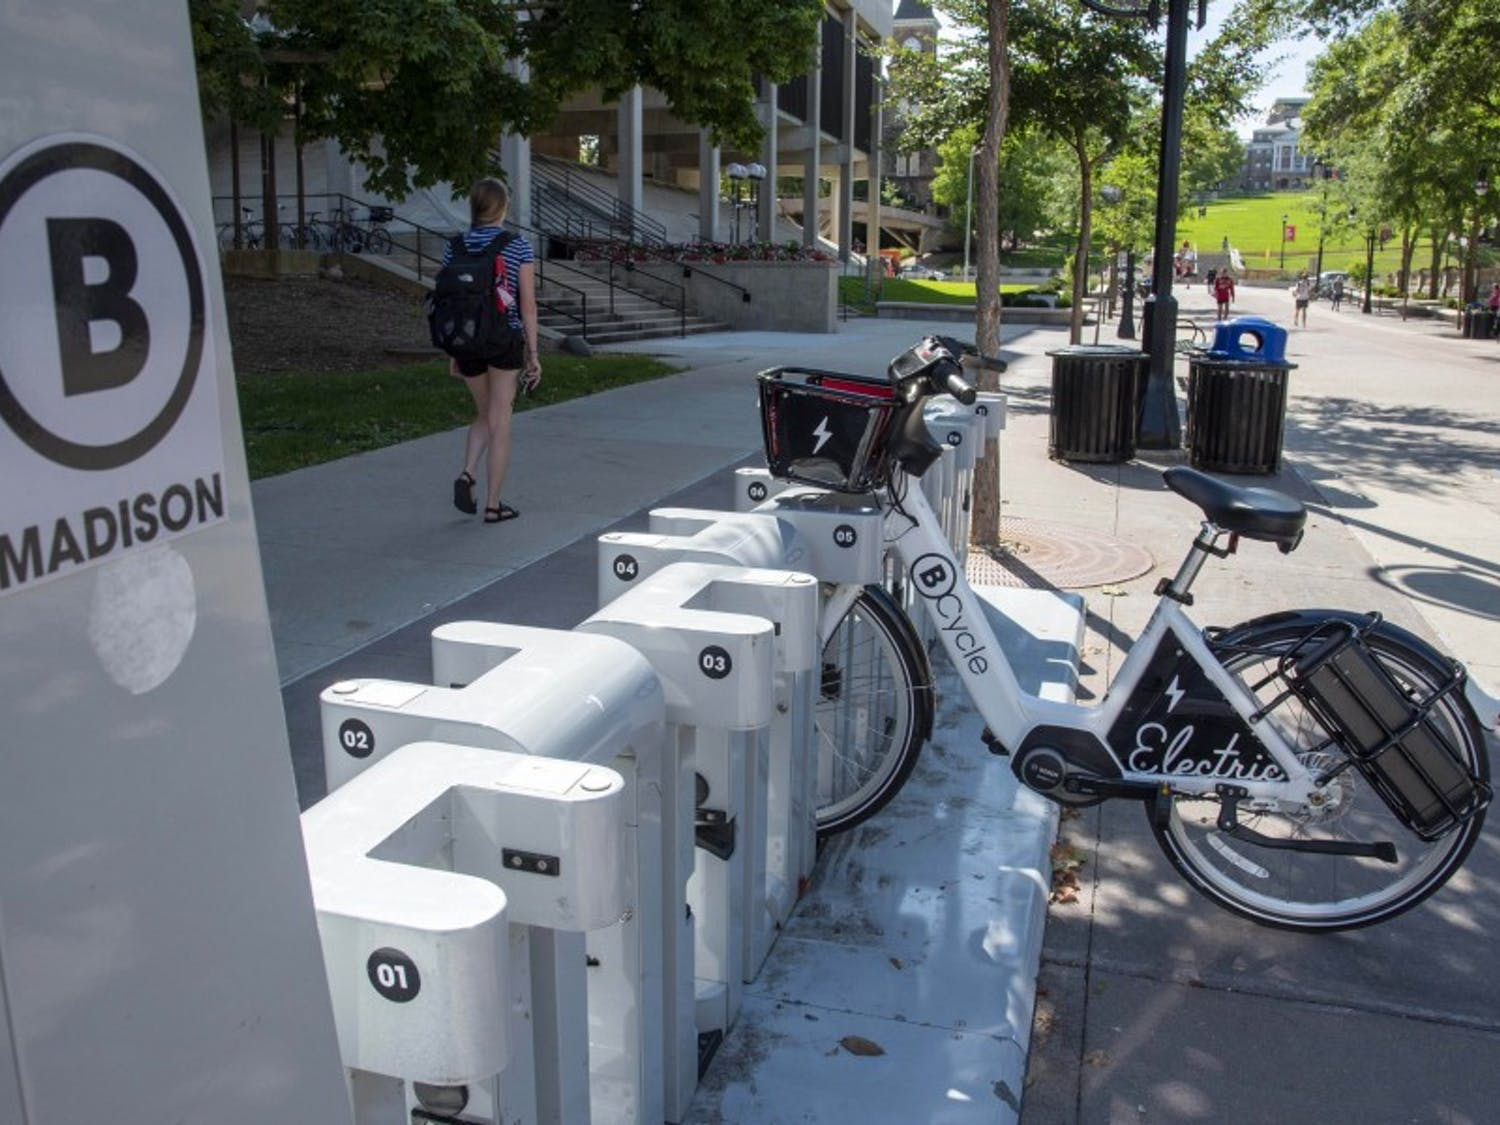 Students staying the summer in Madison express concerns about number of bikes and quality of the ride.